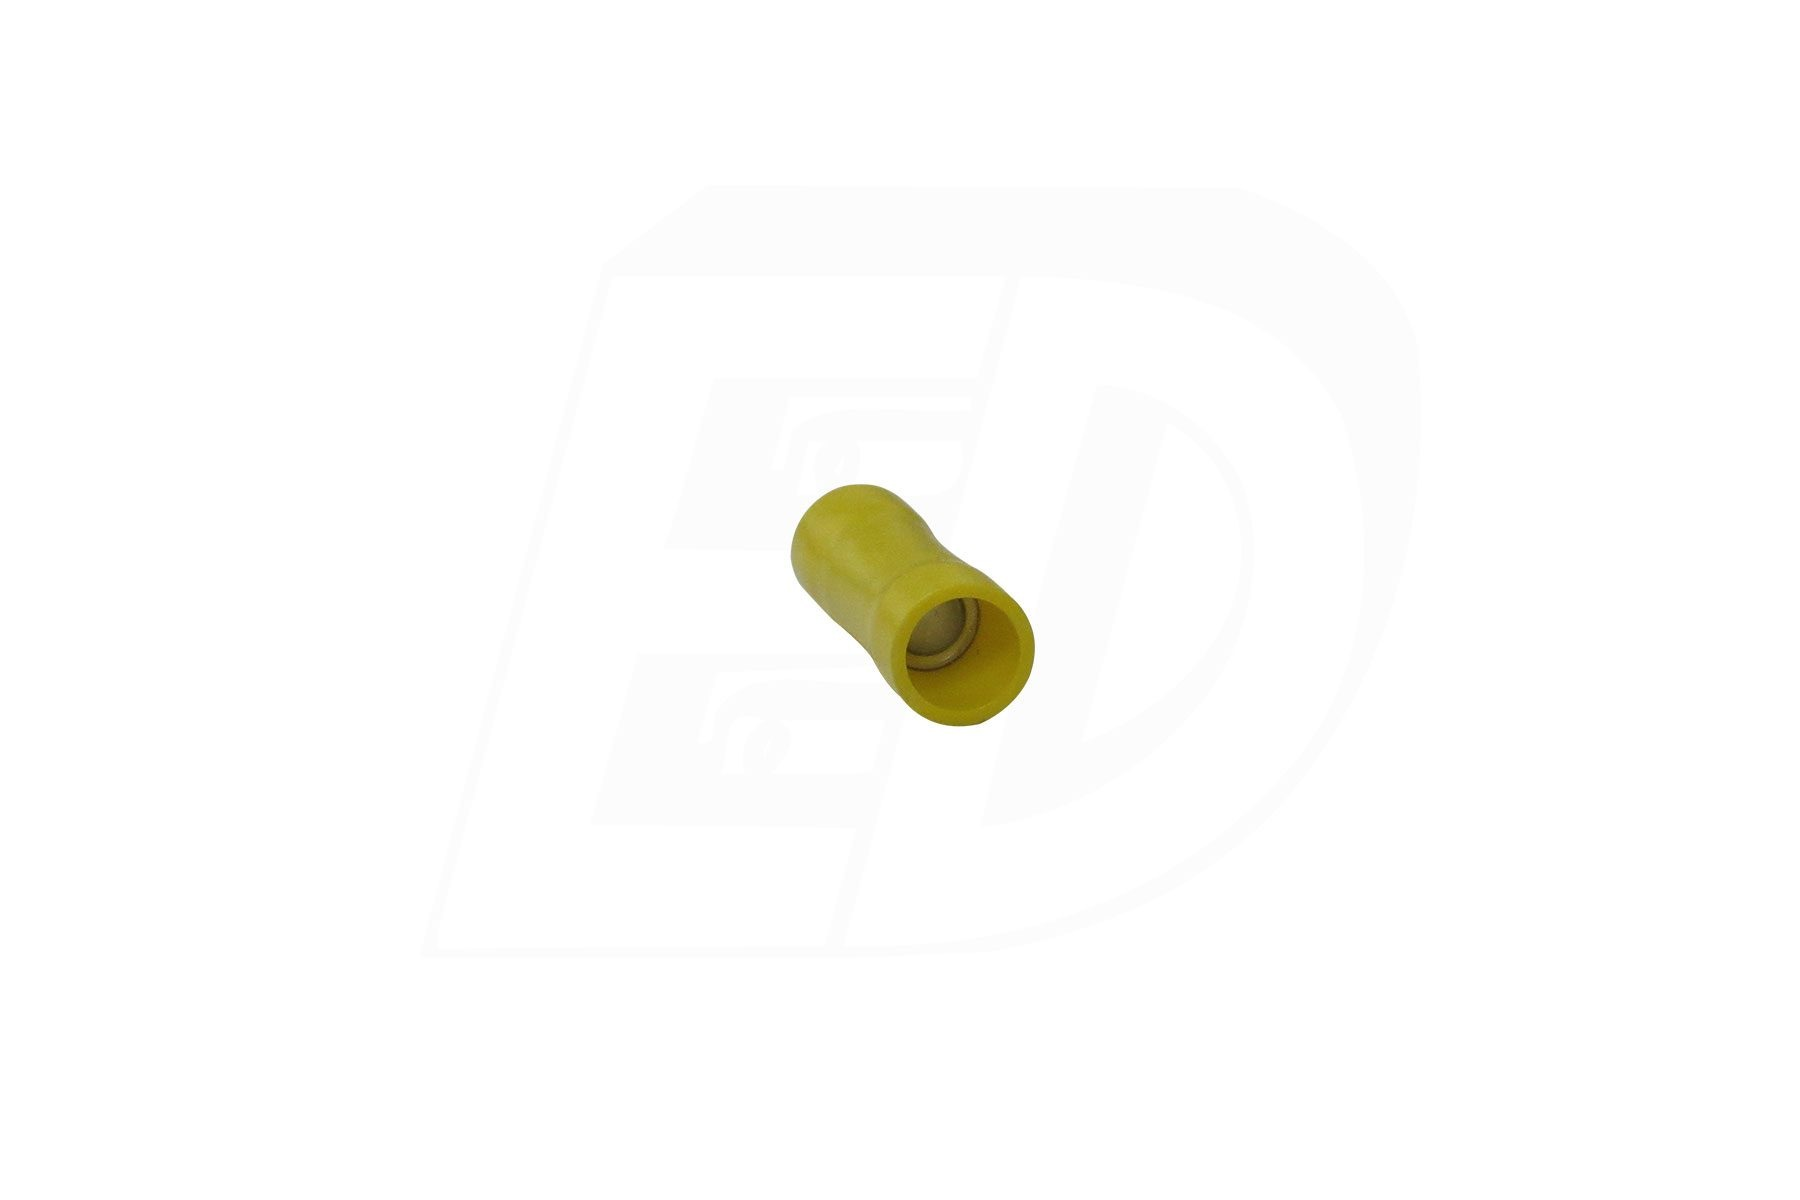 Butted Seam Vinyl Insulated Parallel Splice Connectors 12 - 10 AWG